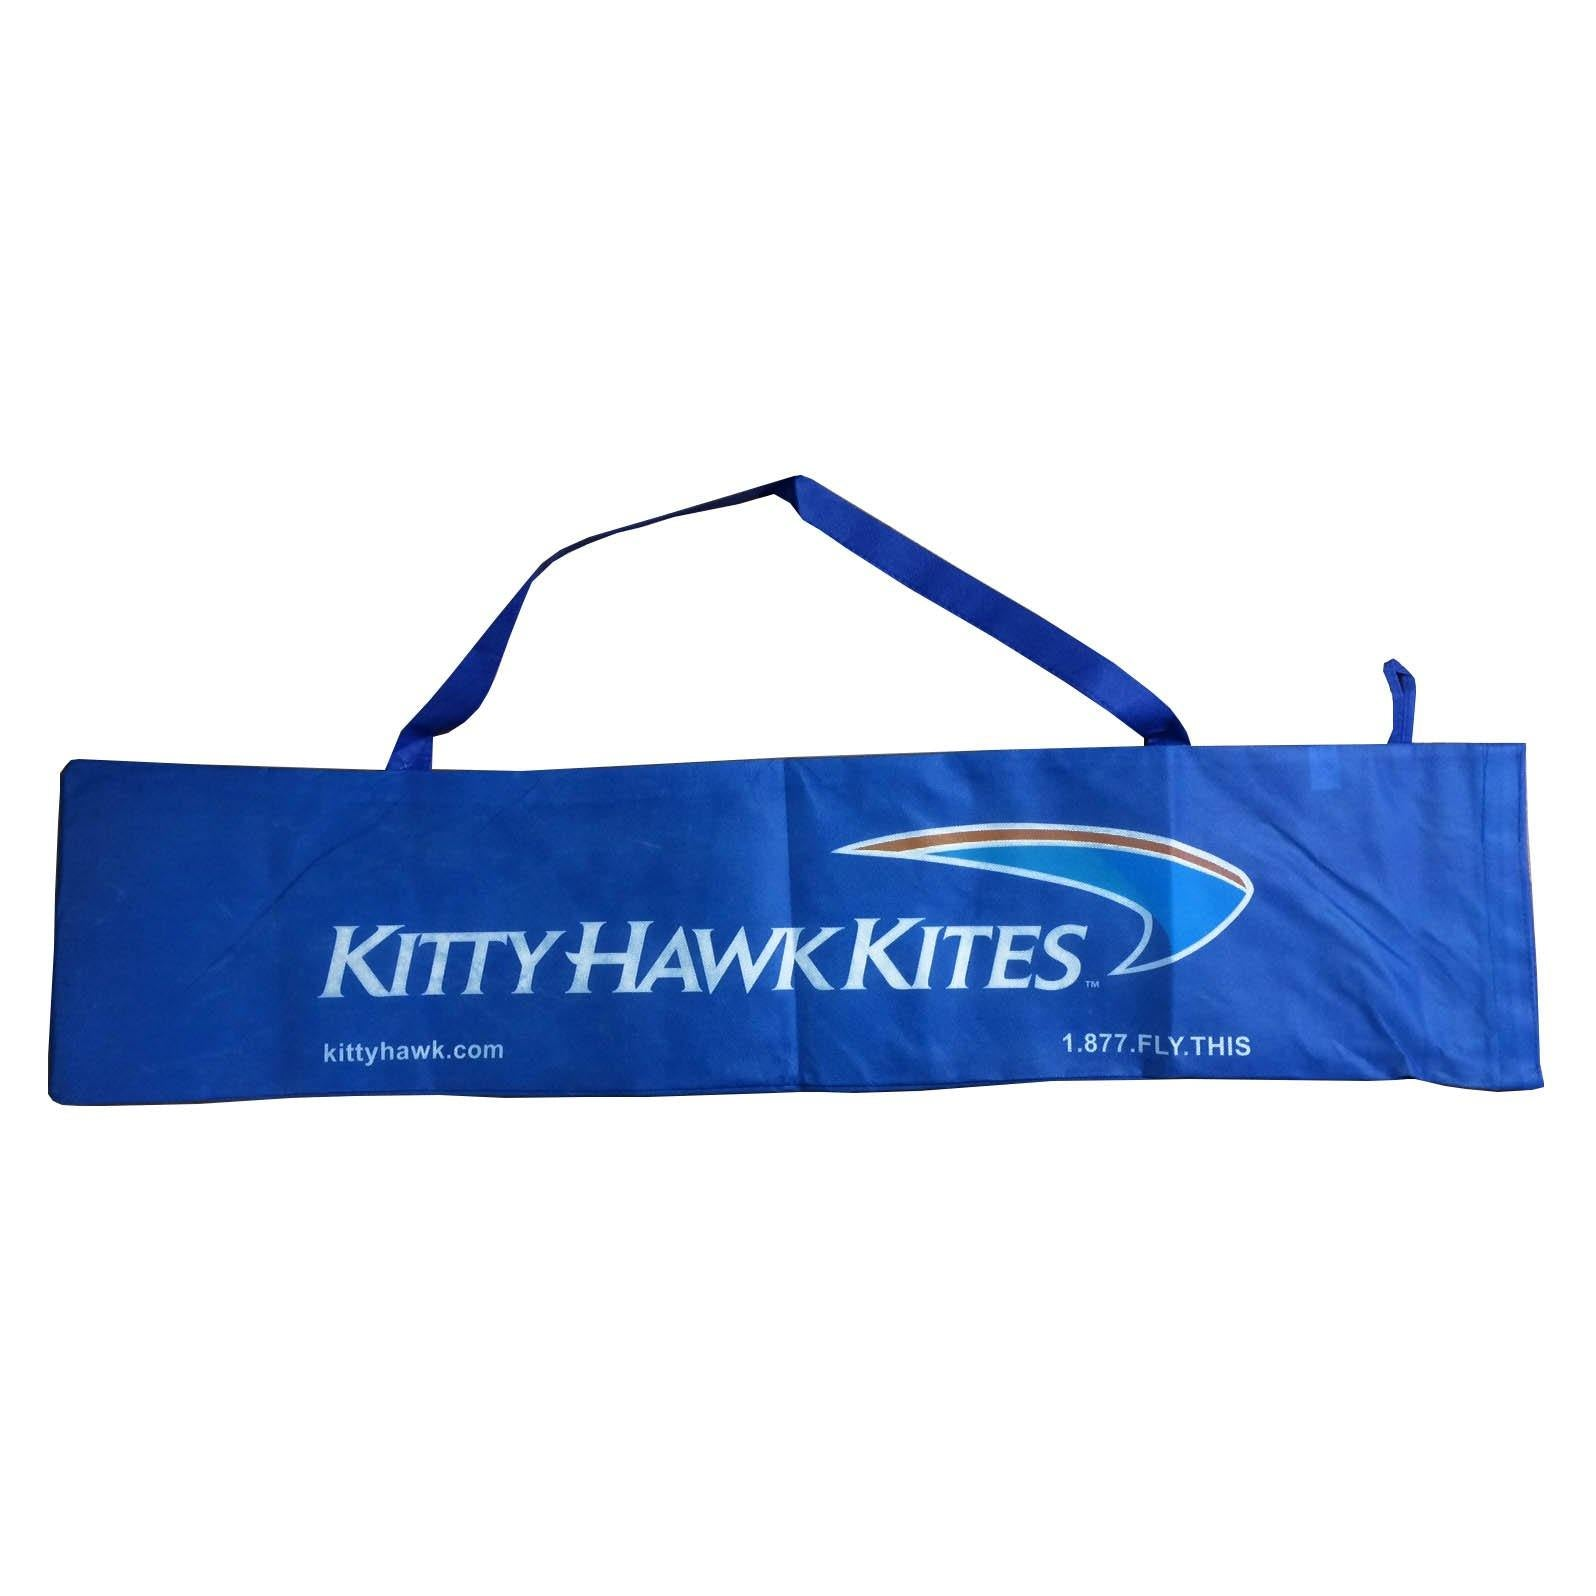 Blue KHK Kite Bag - Kitty Hawk Kites Online Store